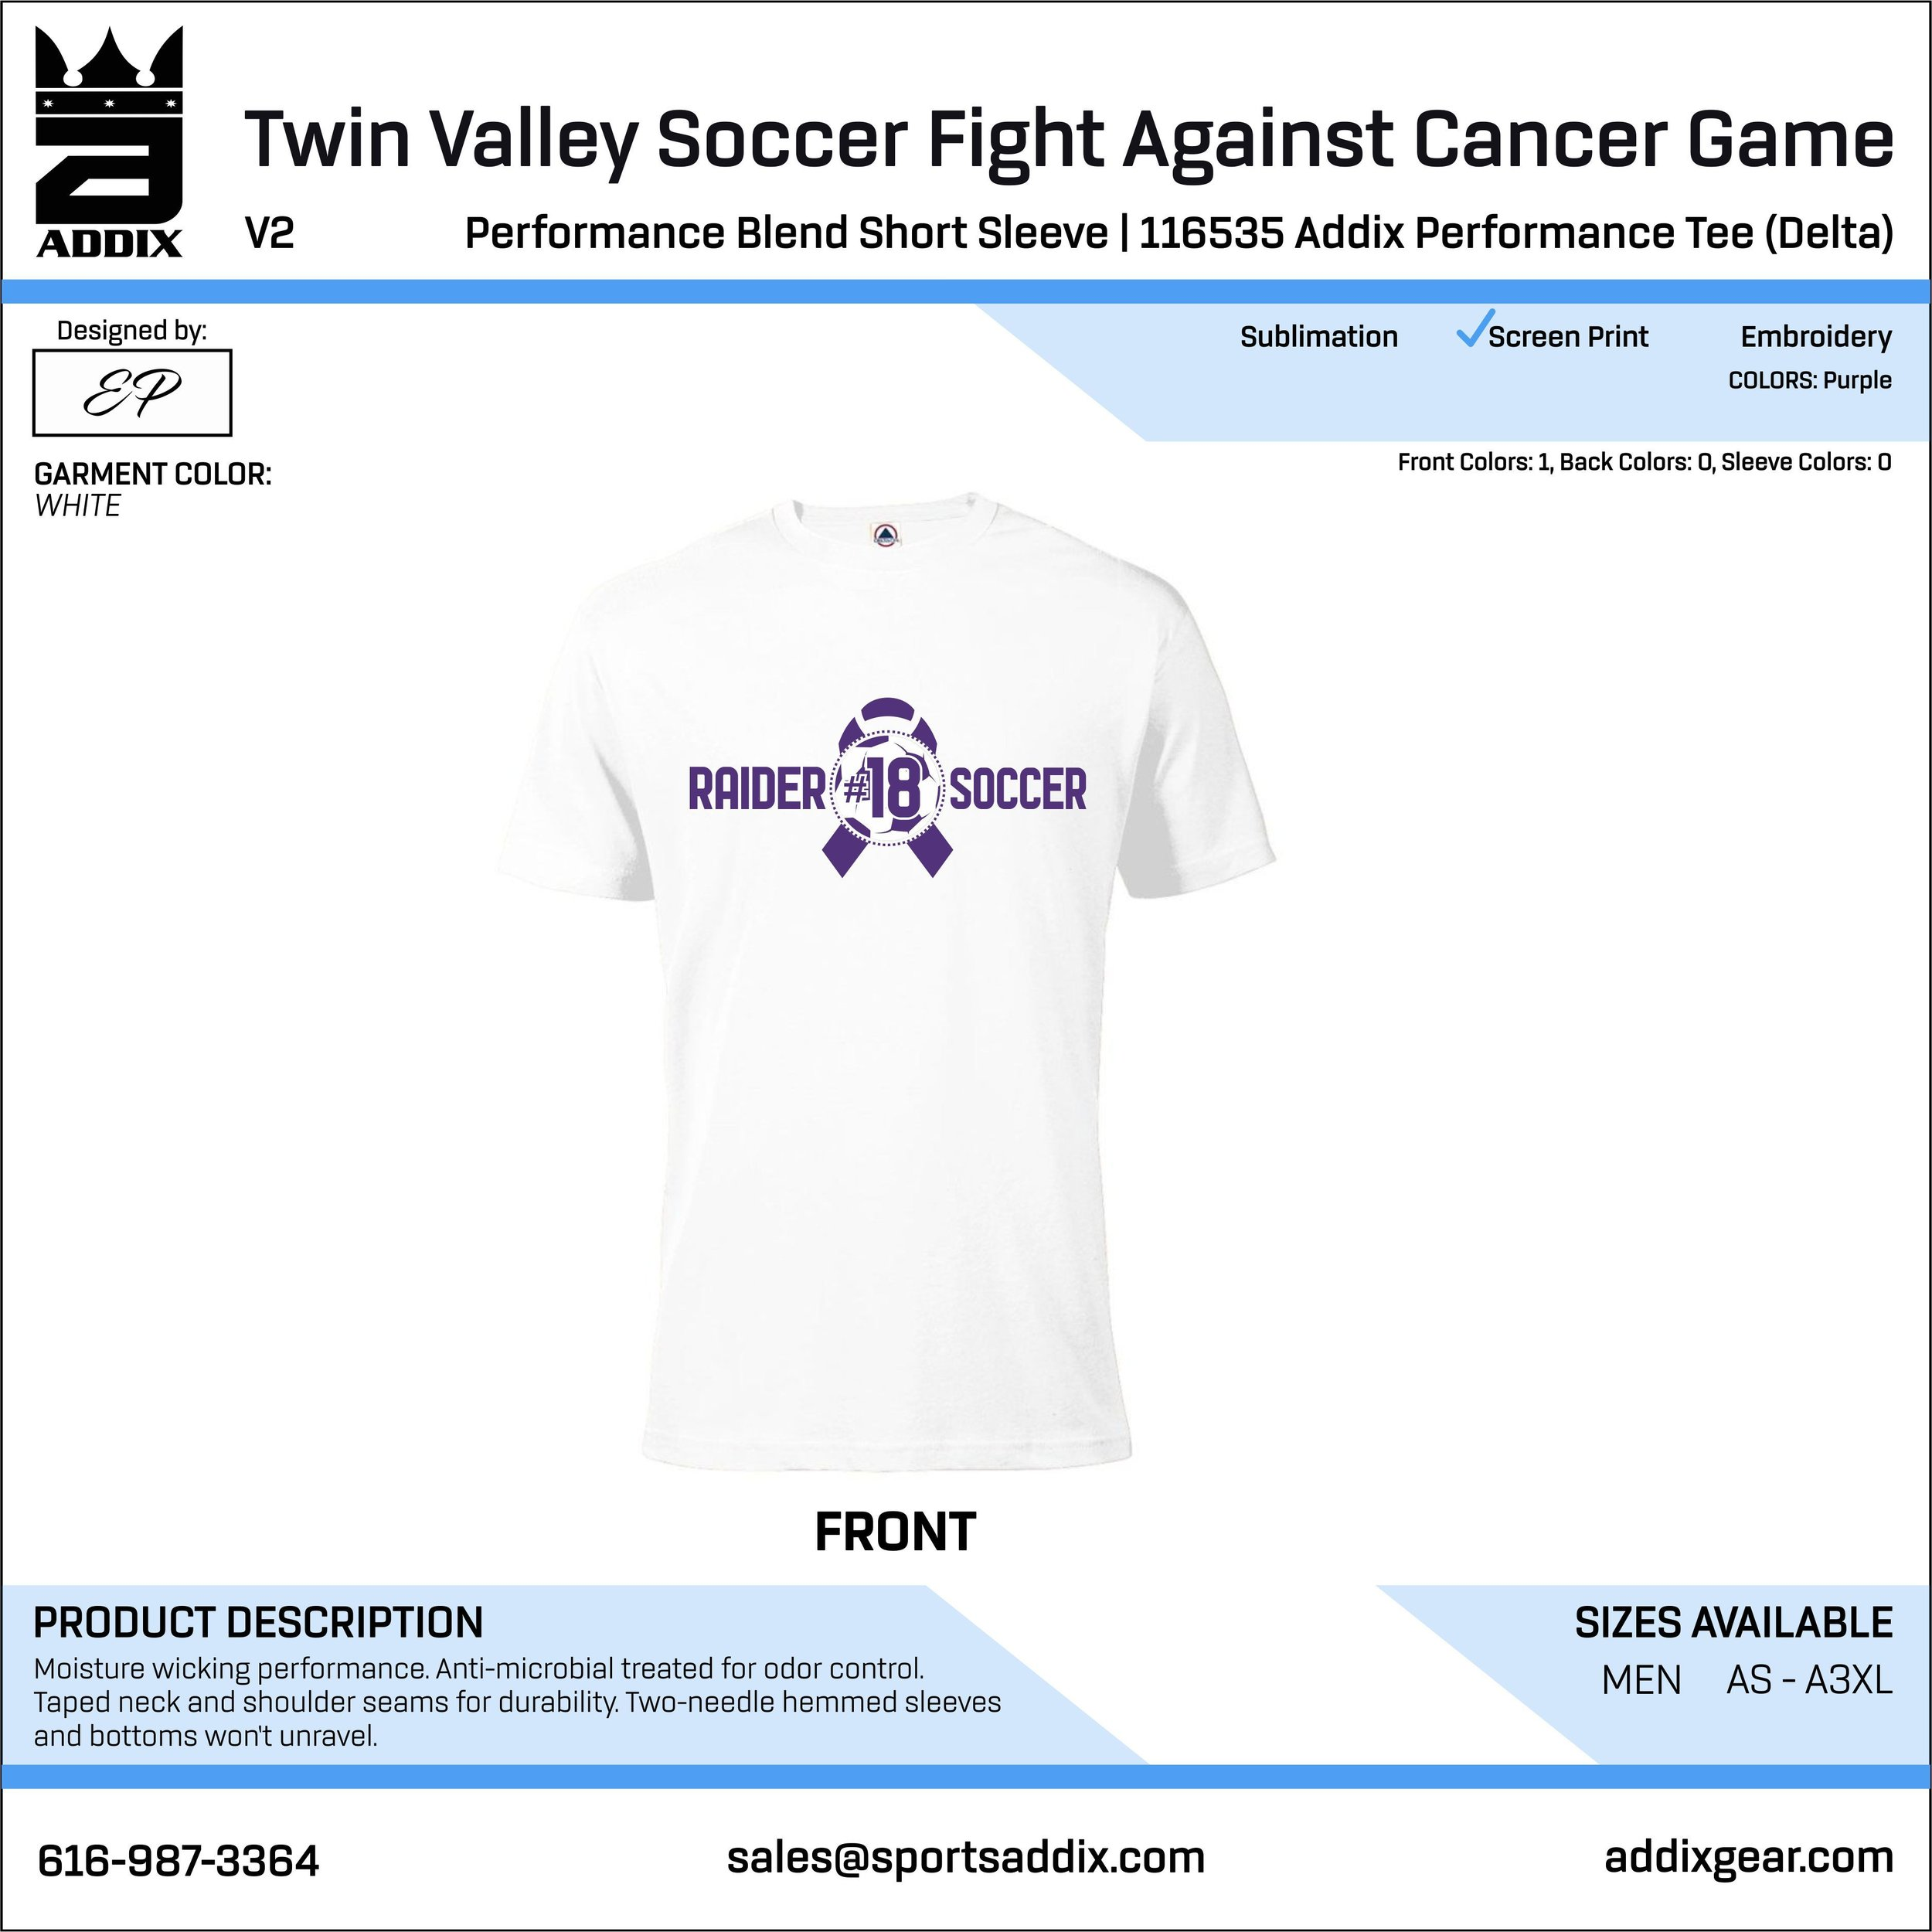 Twin Valley Soccer Fight Against Cancer Game_2019_9-11_EP_sp tee.jpg